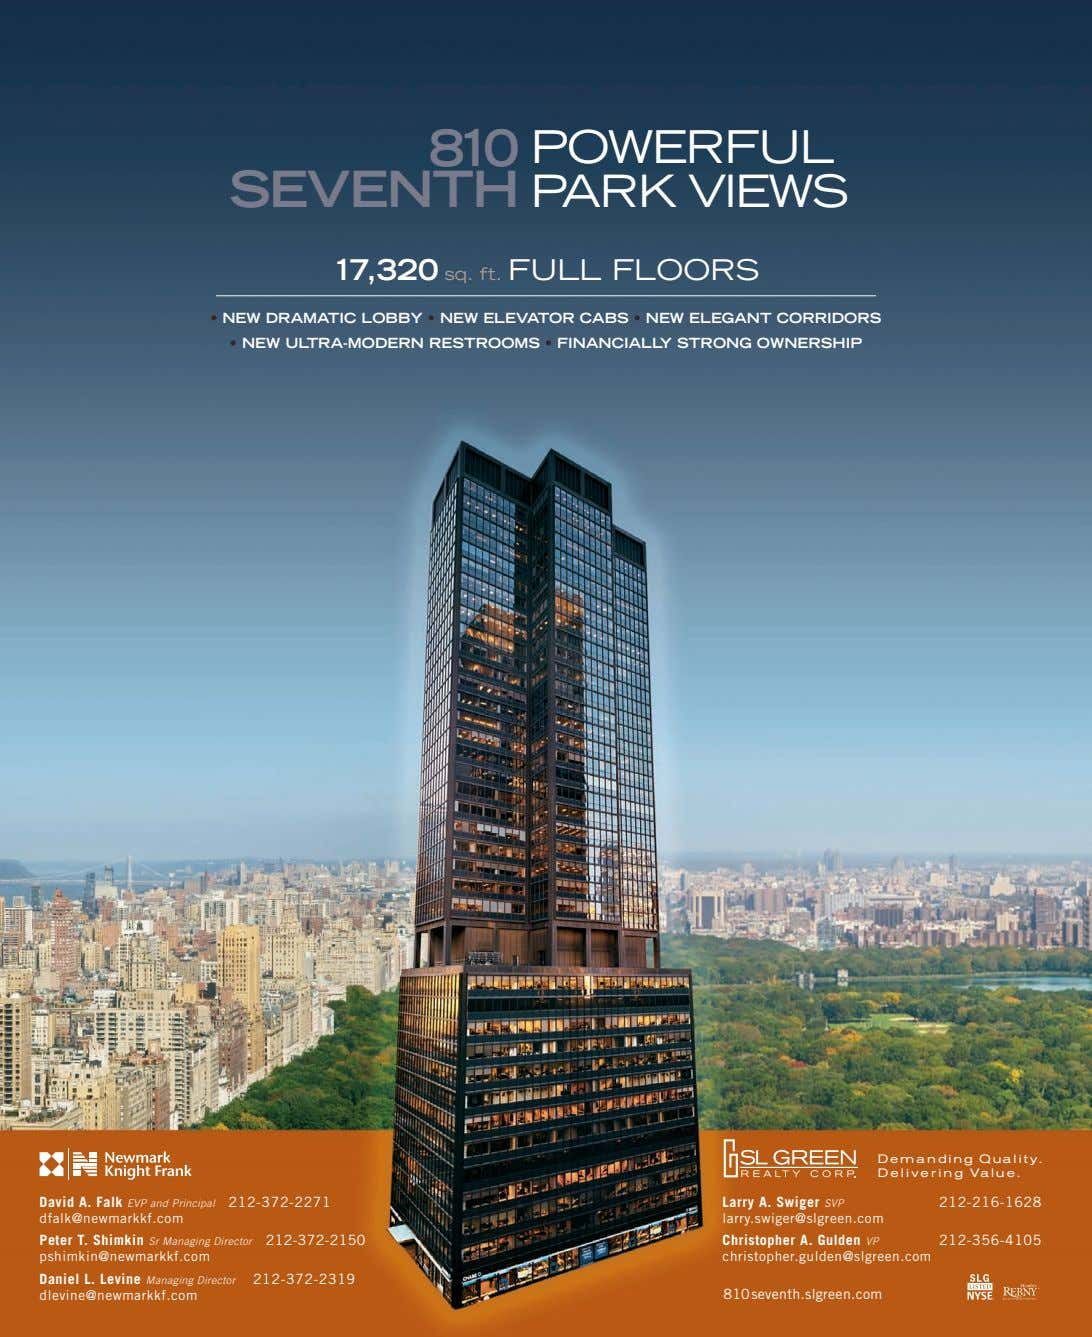 810 POWERFUL SEVENTH PARK VIEWS 17,320 sq. ft. FULL FLOORS • NEW DRAMATIC LOBBY •